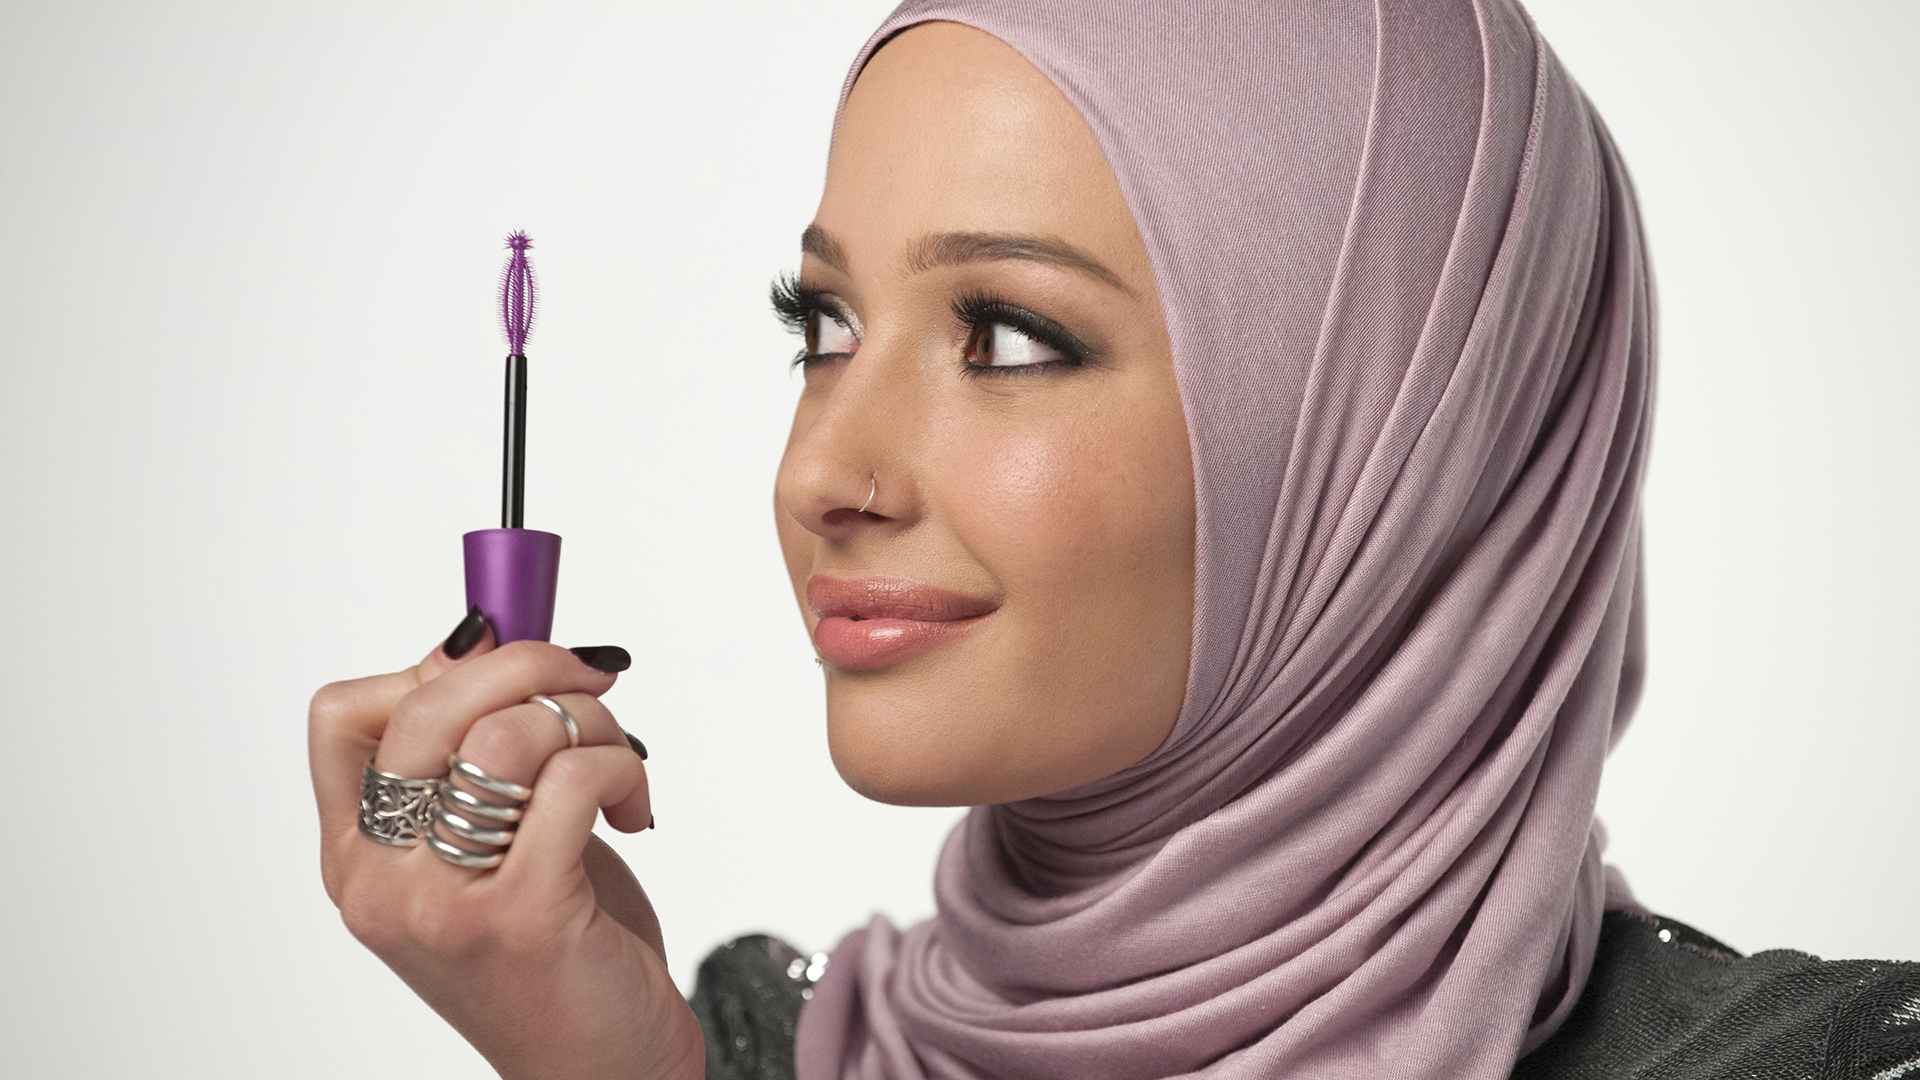 Nura Afia Is Covergirl 39 S First Muslim Ambassador